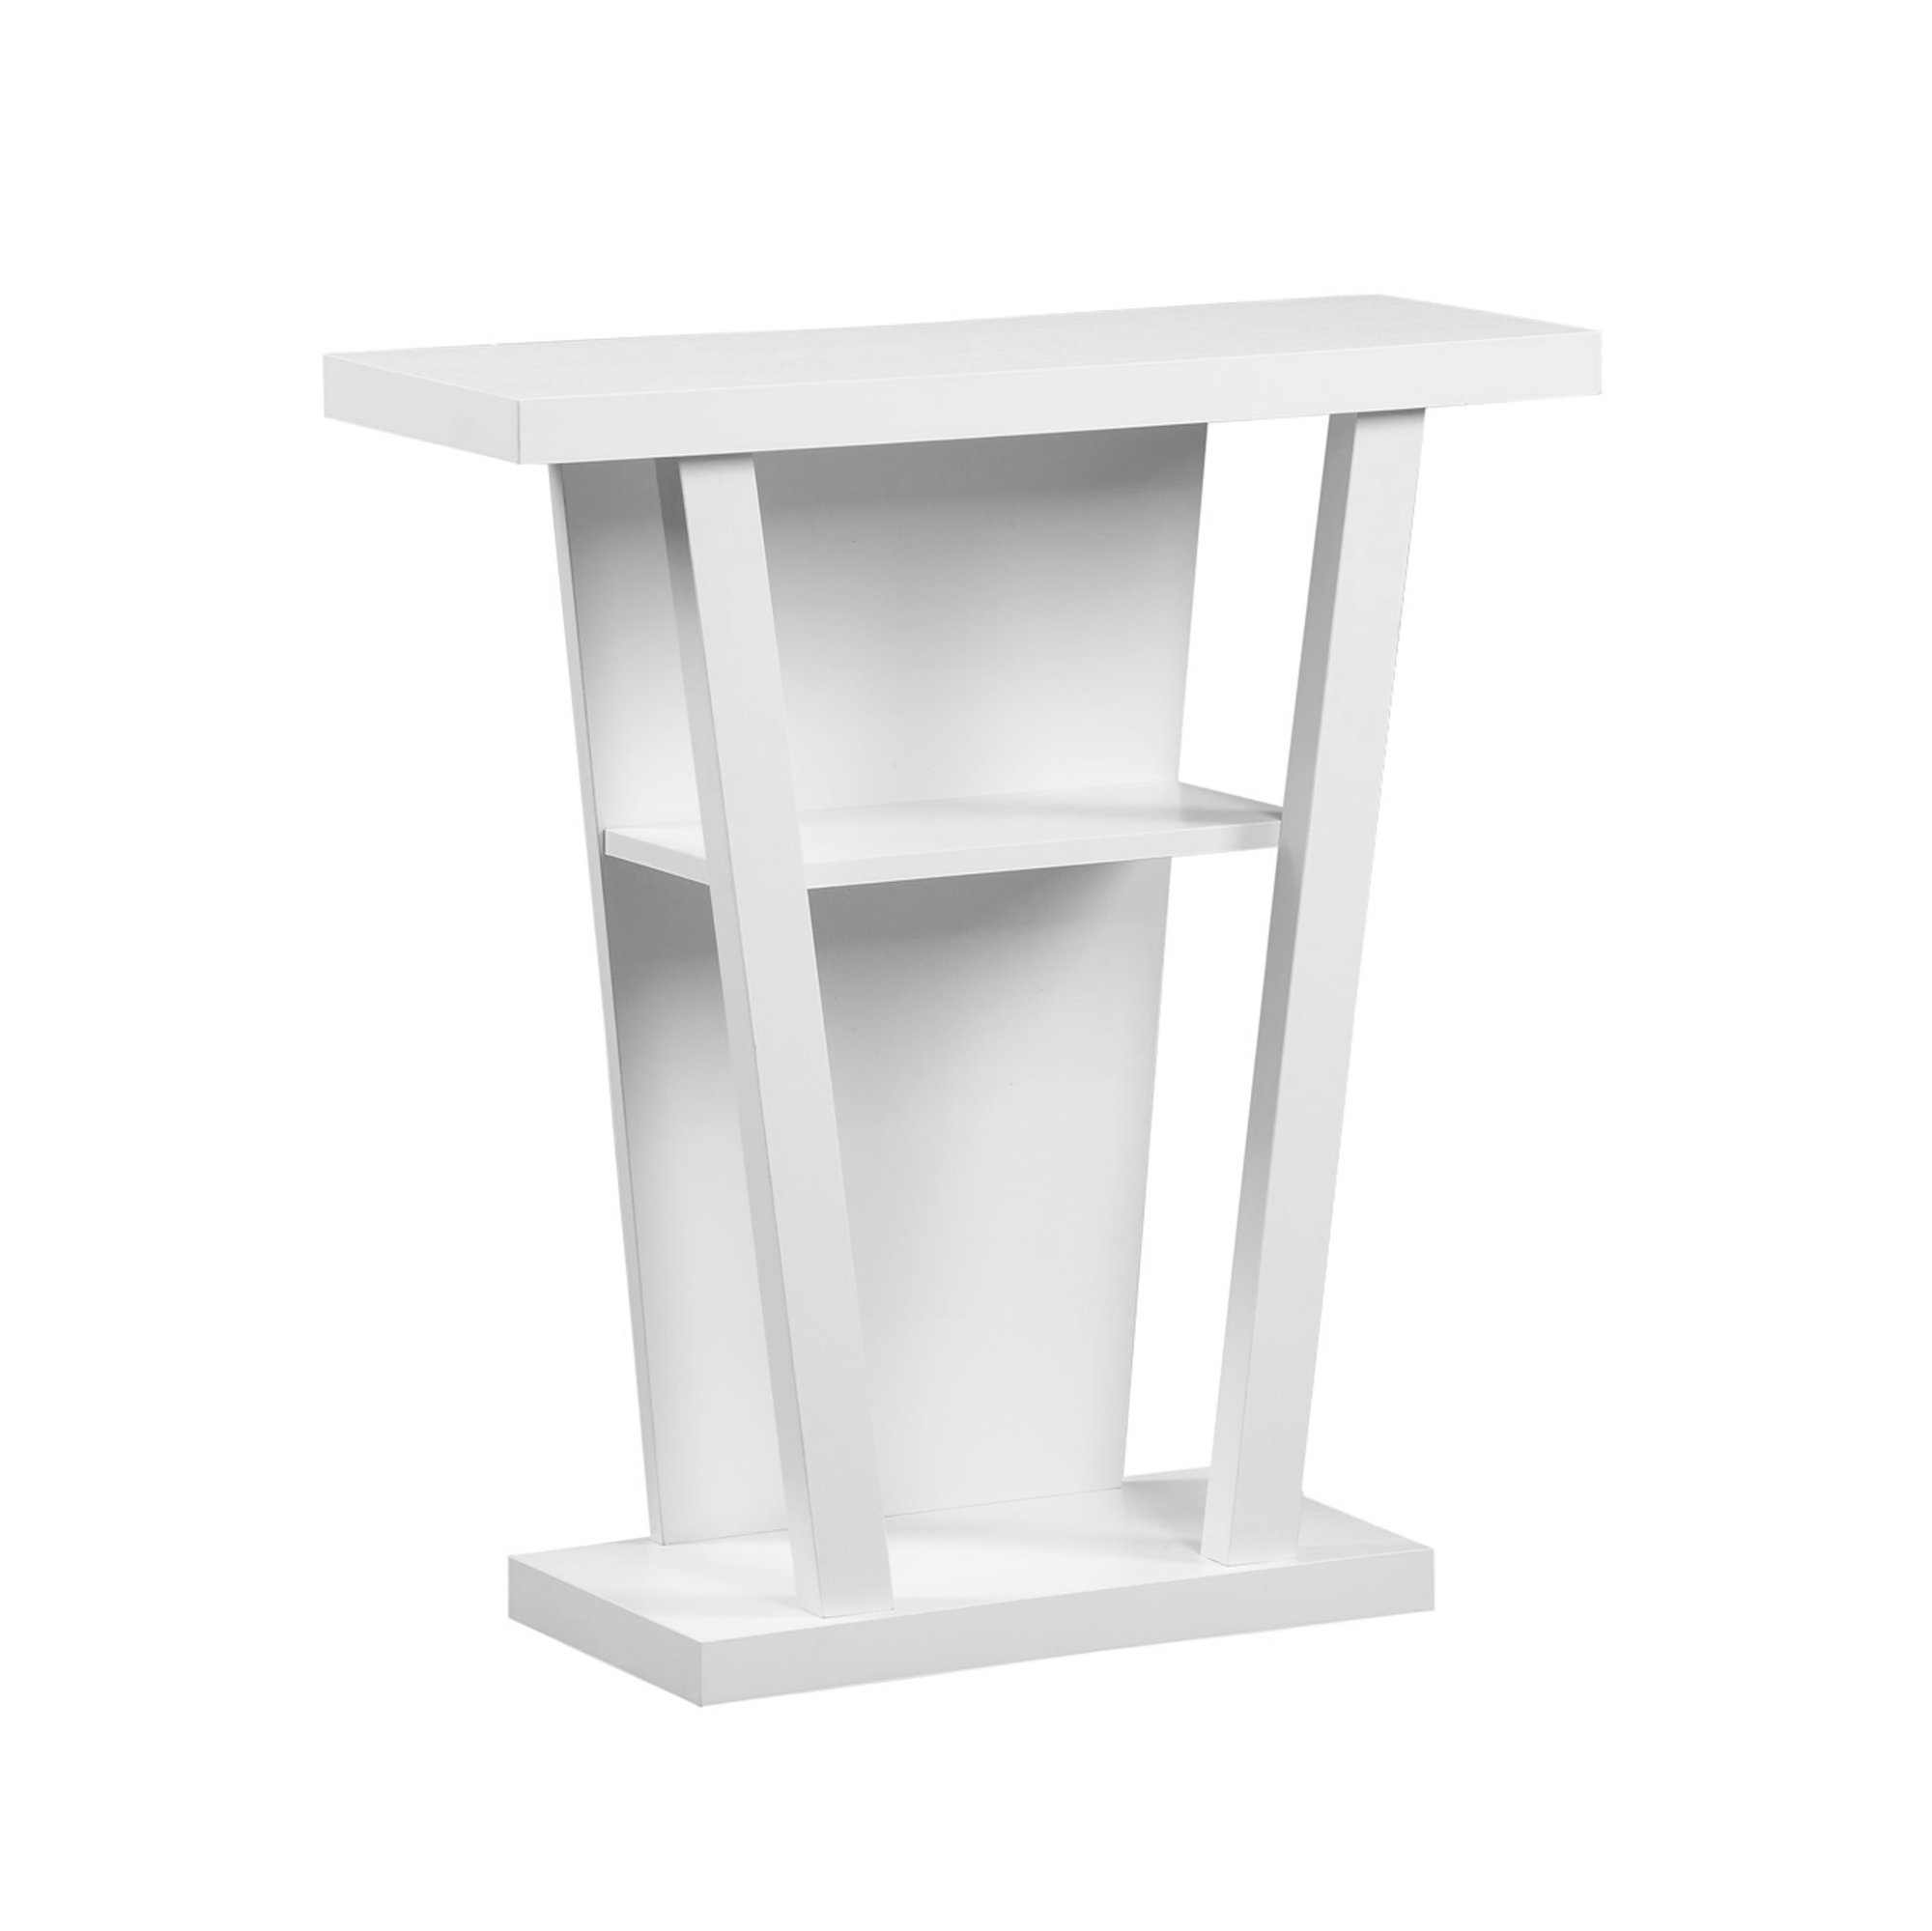 monarch specialties white hall console accent table the classy home mnc target small black lamp outdoor lounge chairs clearance vintage telephone grill armchairs for spaces